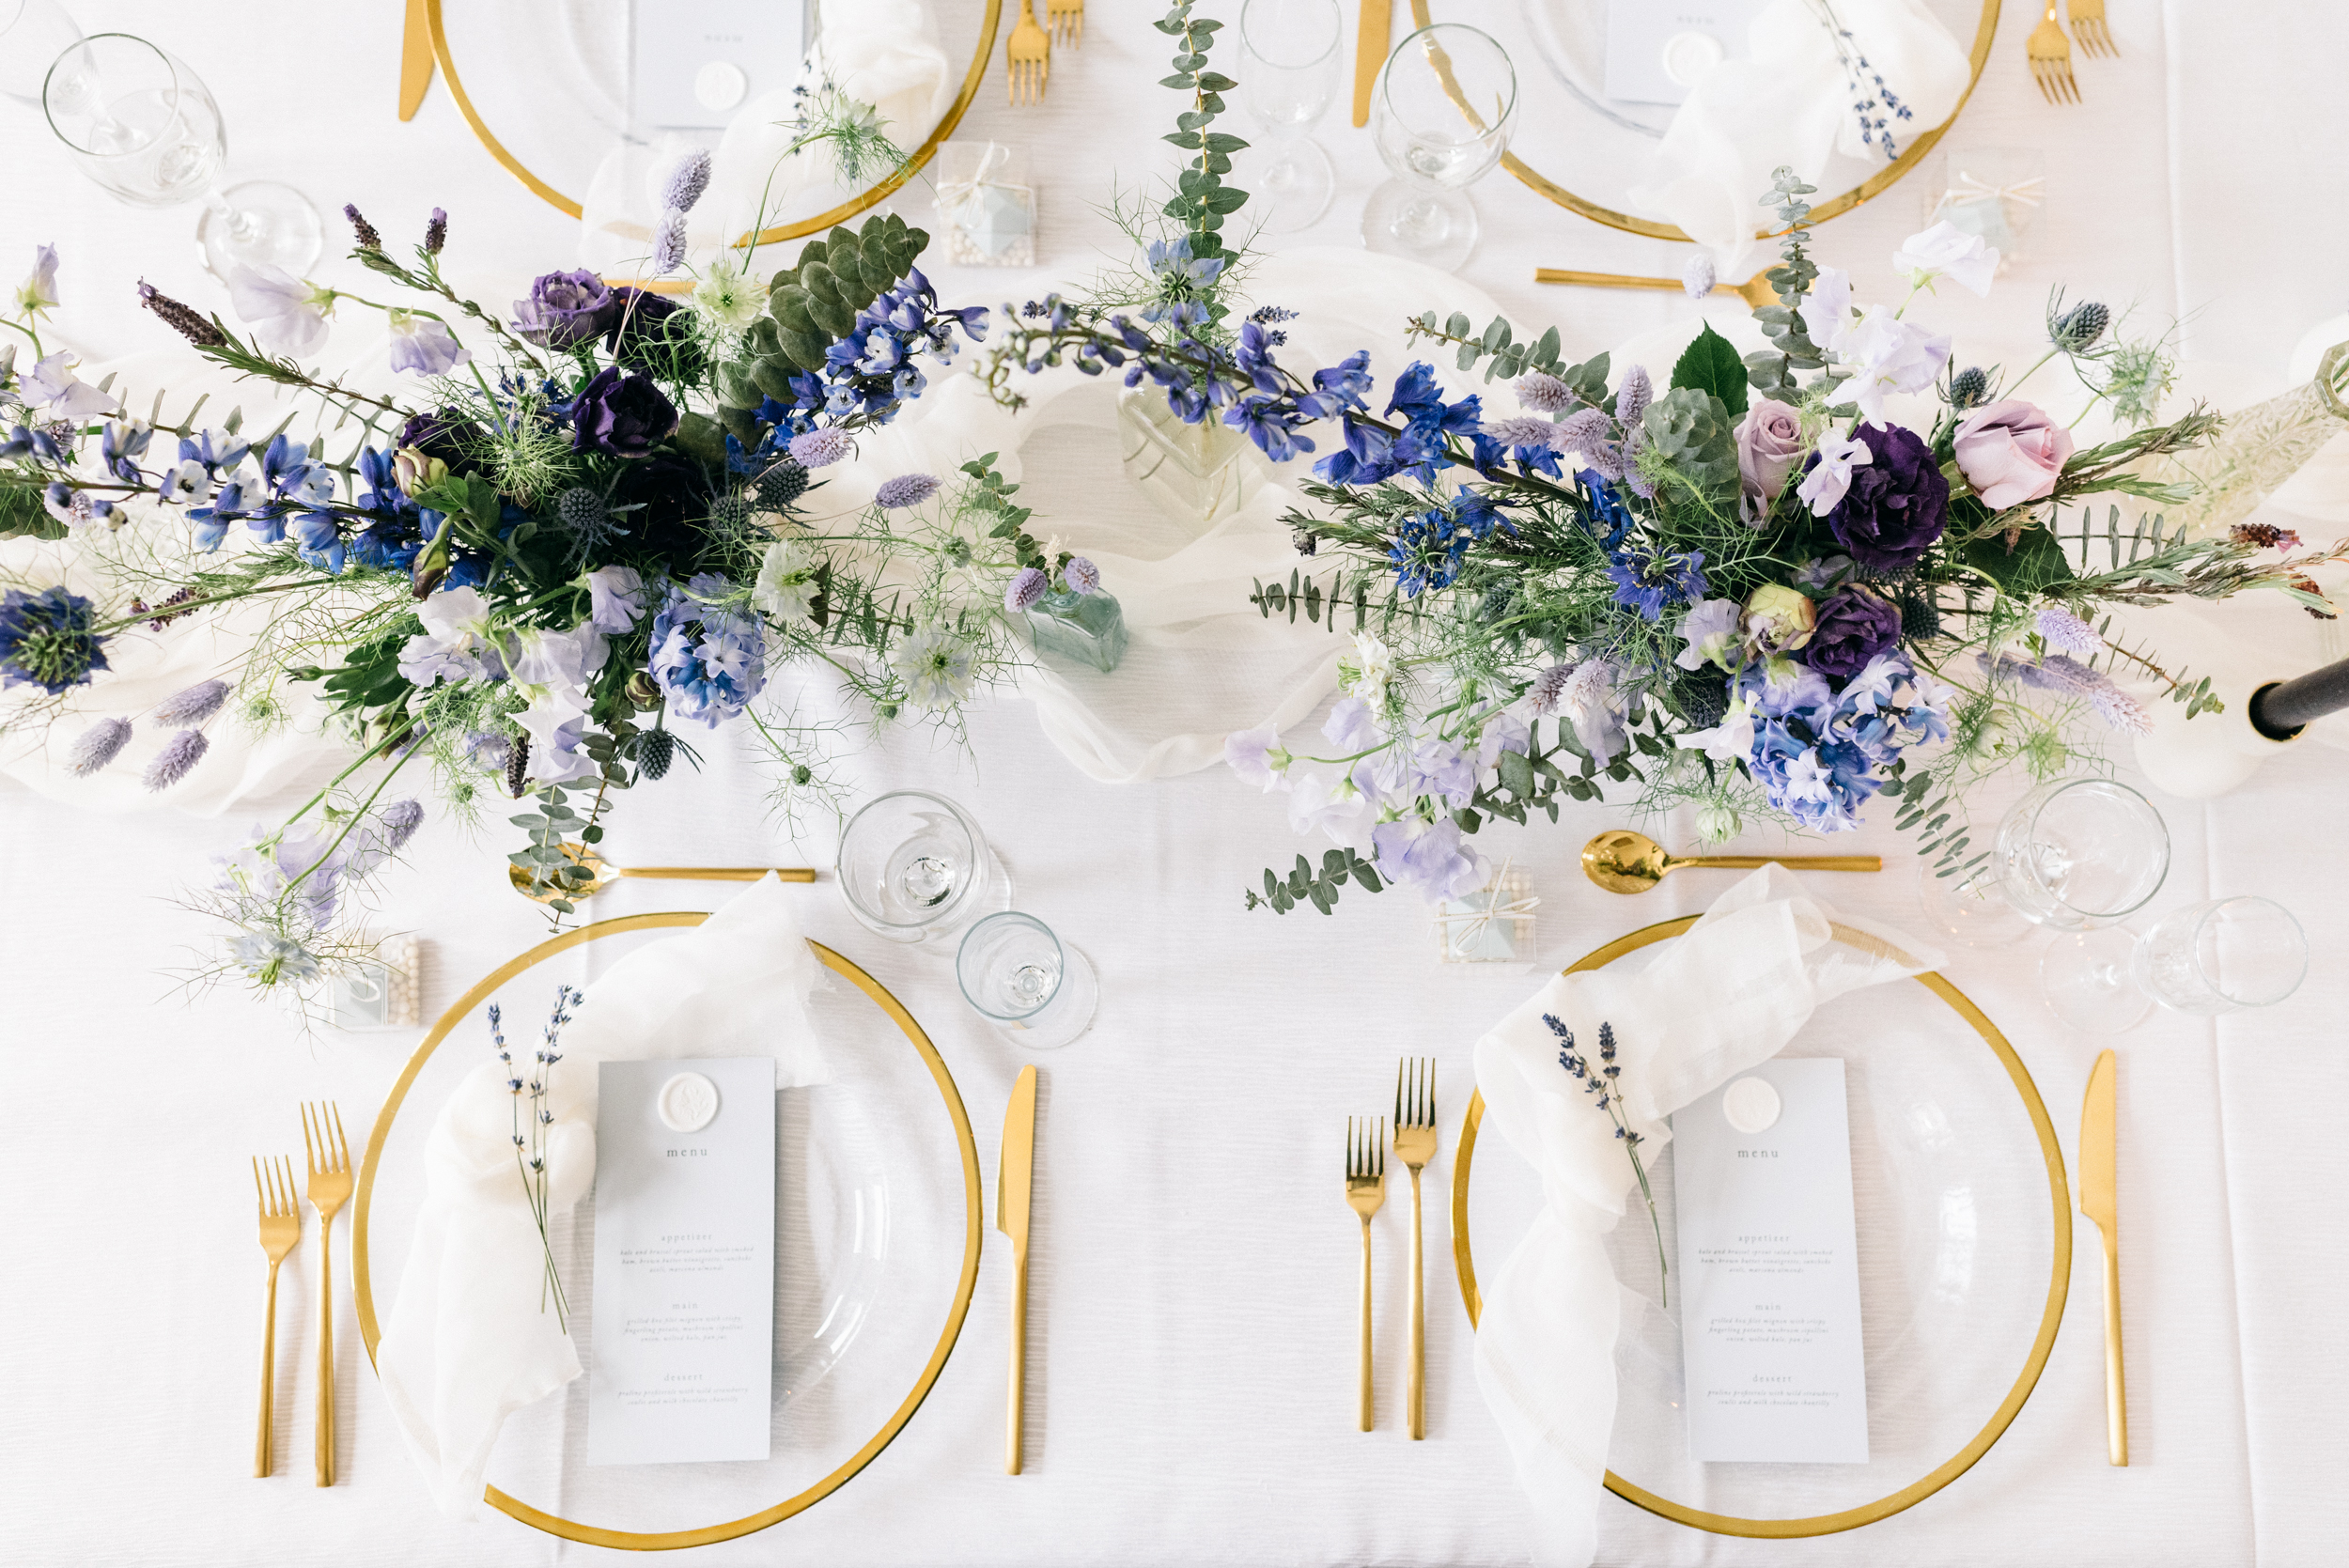 styled-tablescapes-51.jpg